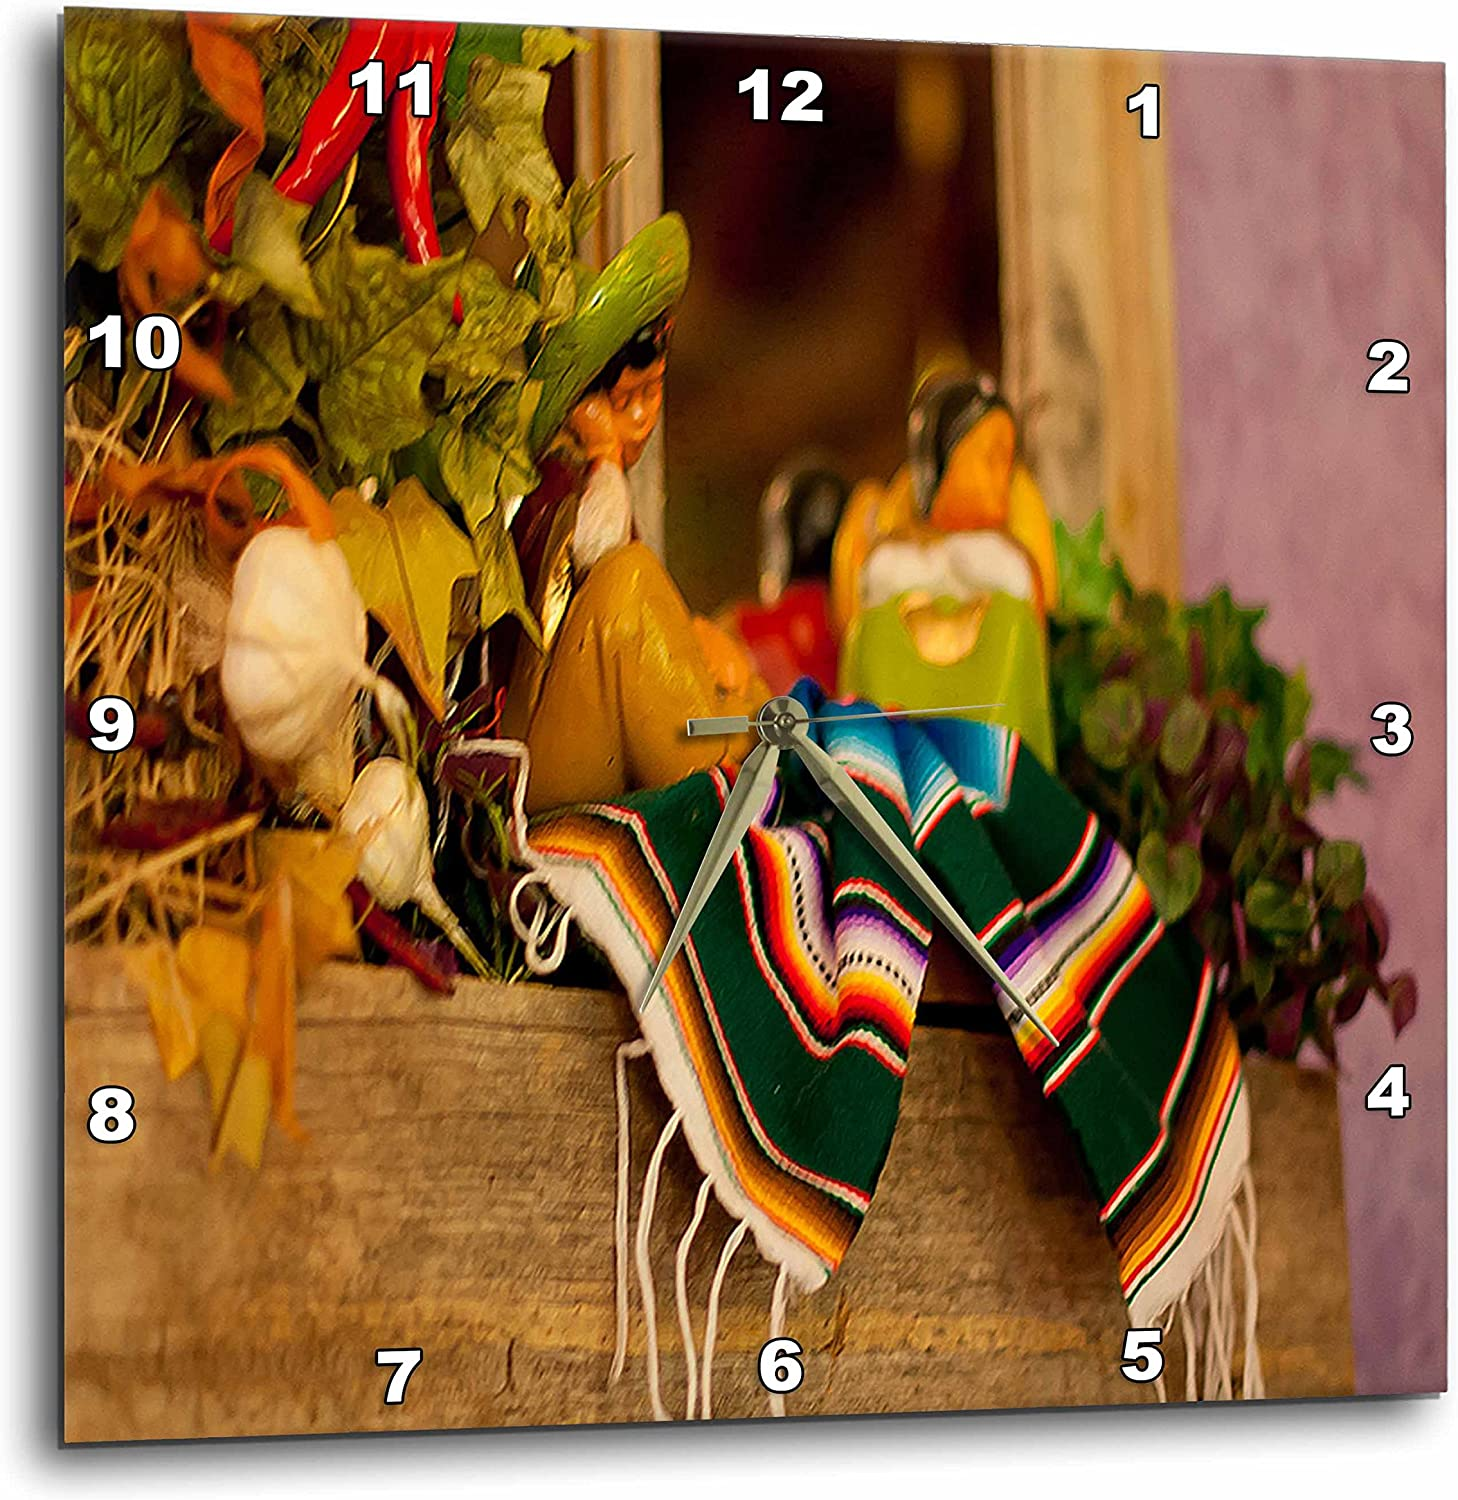 "3dRose Hispanic Girl and Boy Ceramic Hanging on A Mirror with Hot Chili's and Leaves at Mexican Restaurant-Wall Clock, 13 by 13"" (DPP_52081_2)"